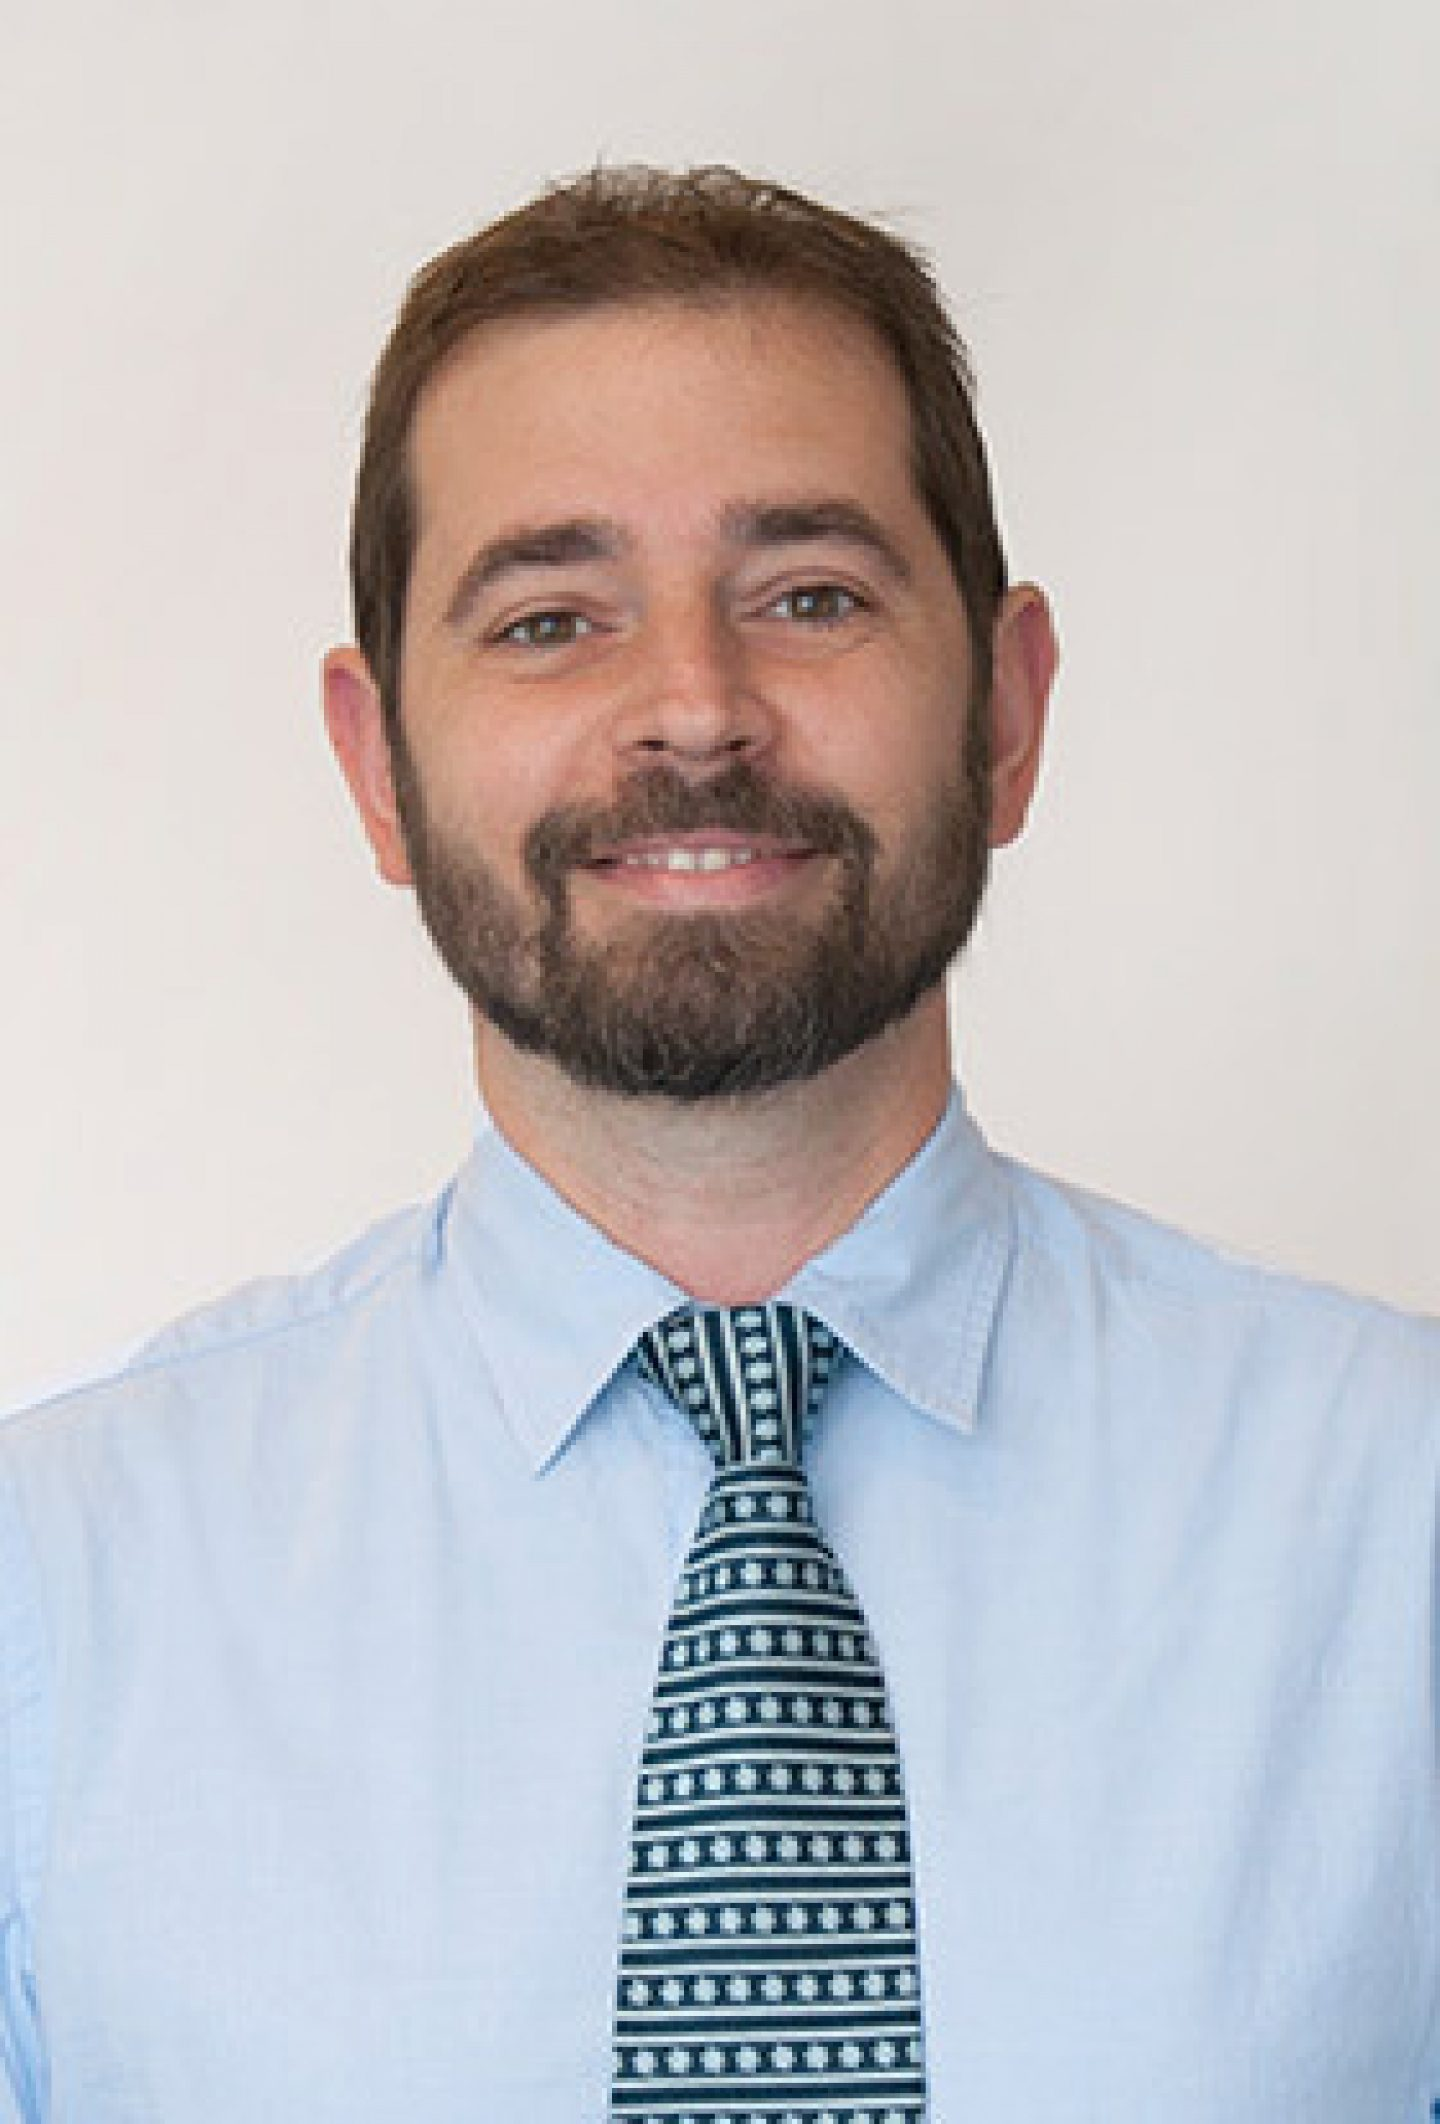 Profile photo for Chad Shenk, Ph.D.